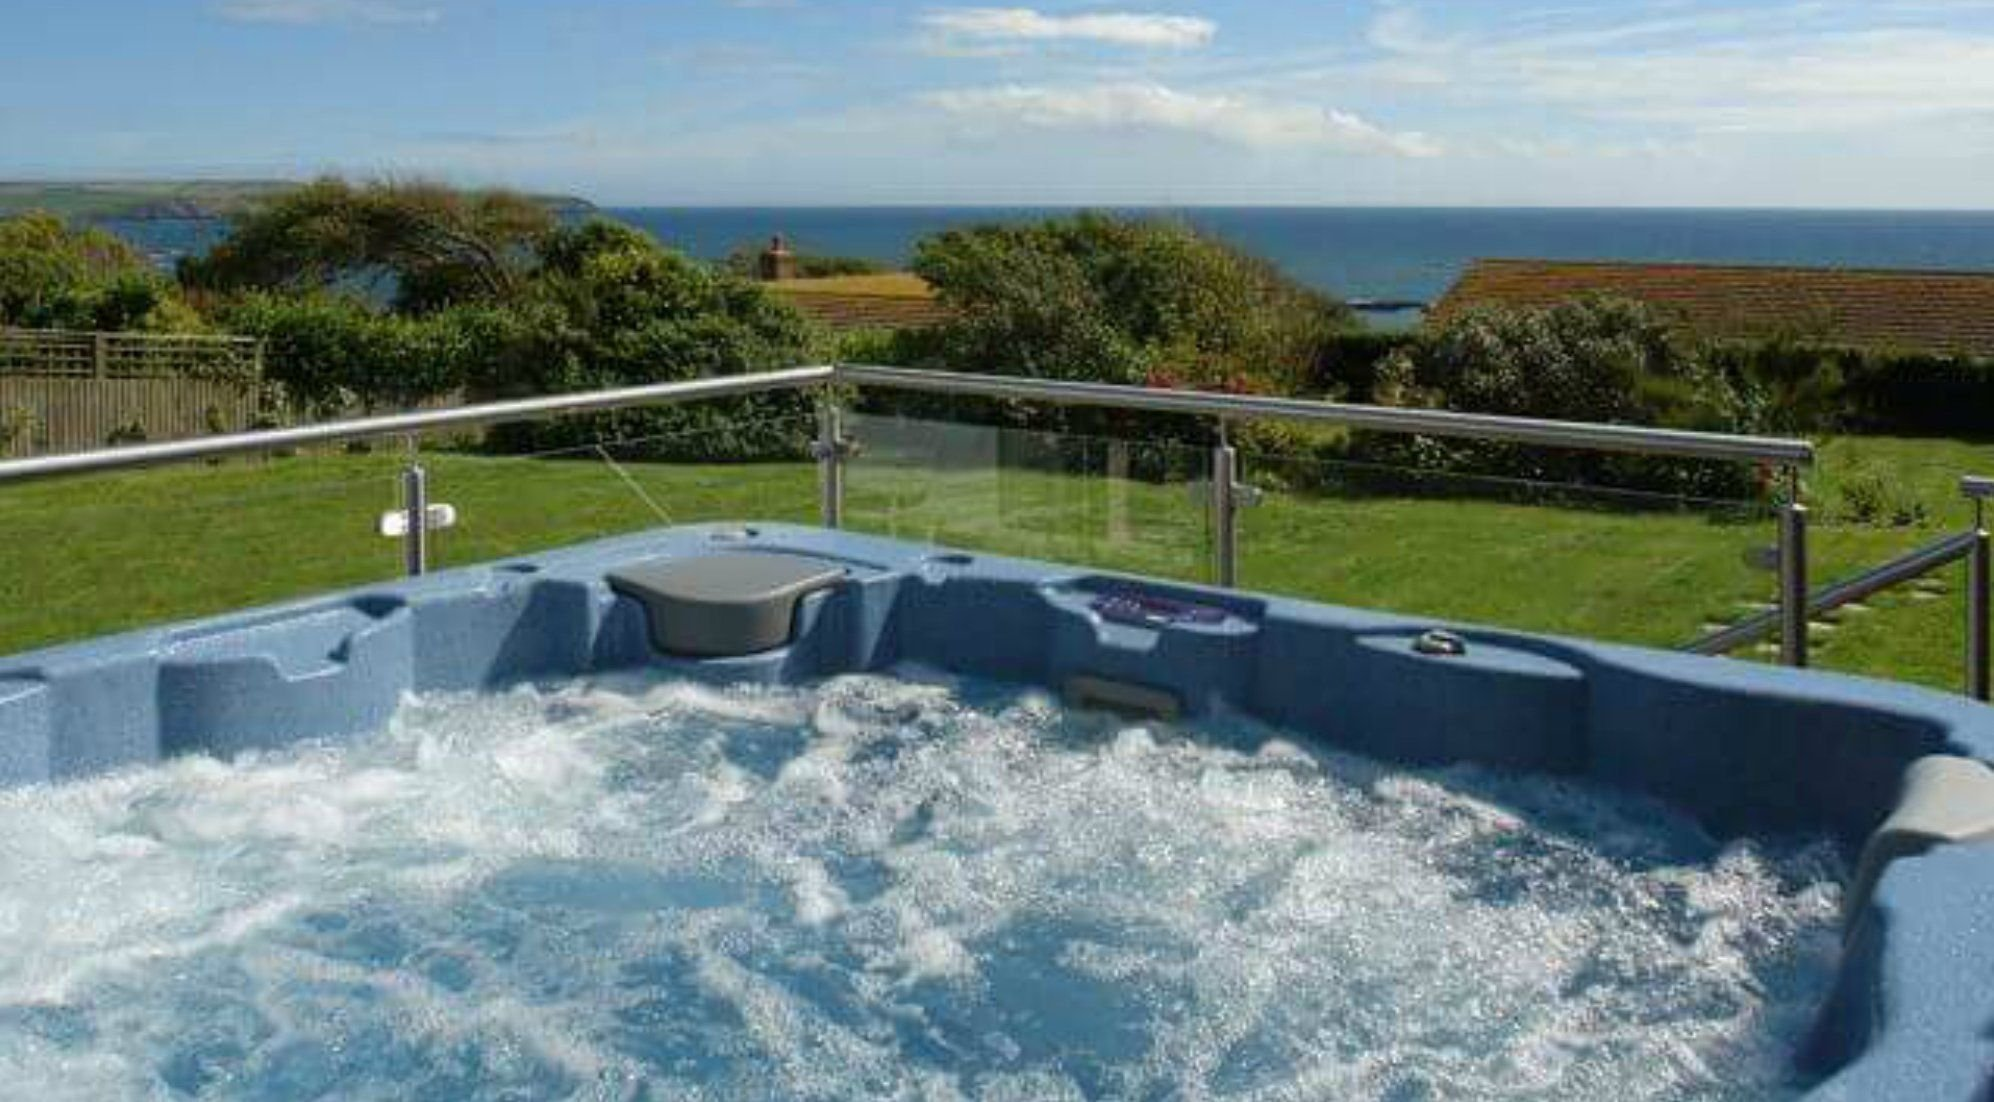 Hot tub and pool maintenance in Salcombe, Kingsbridge, Hope Cove and Bigbury